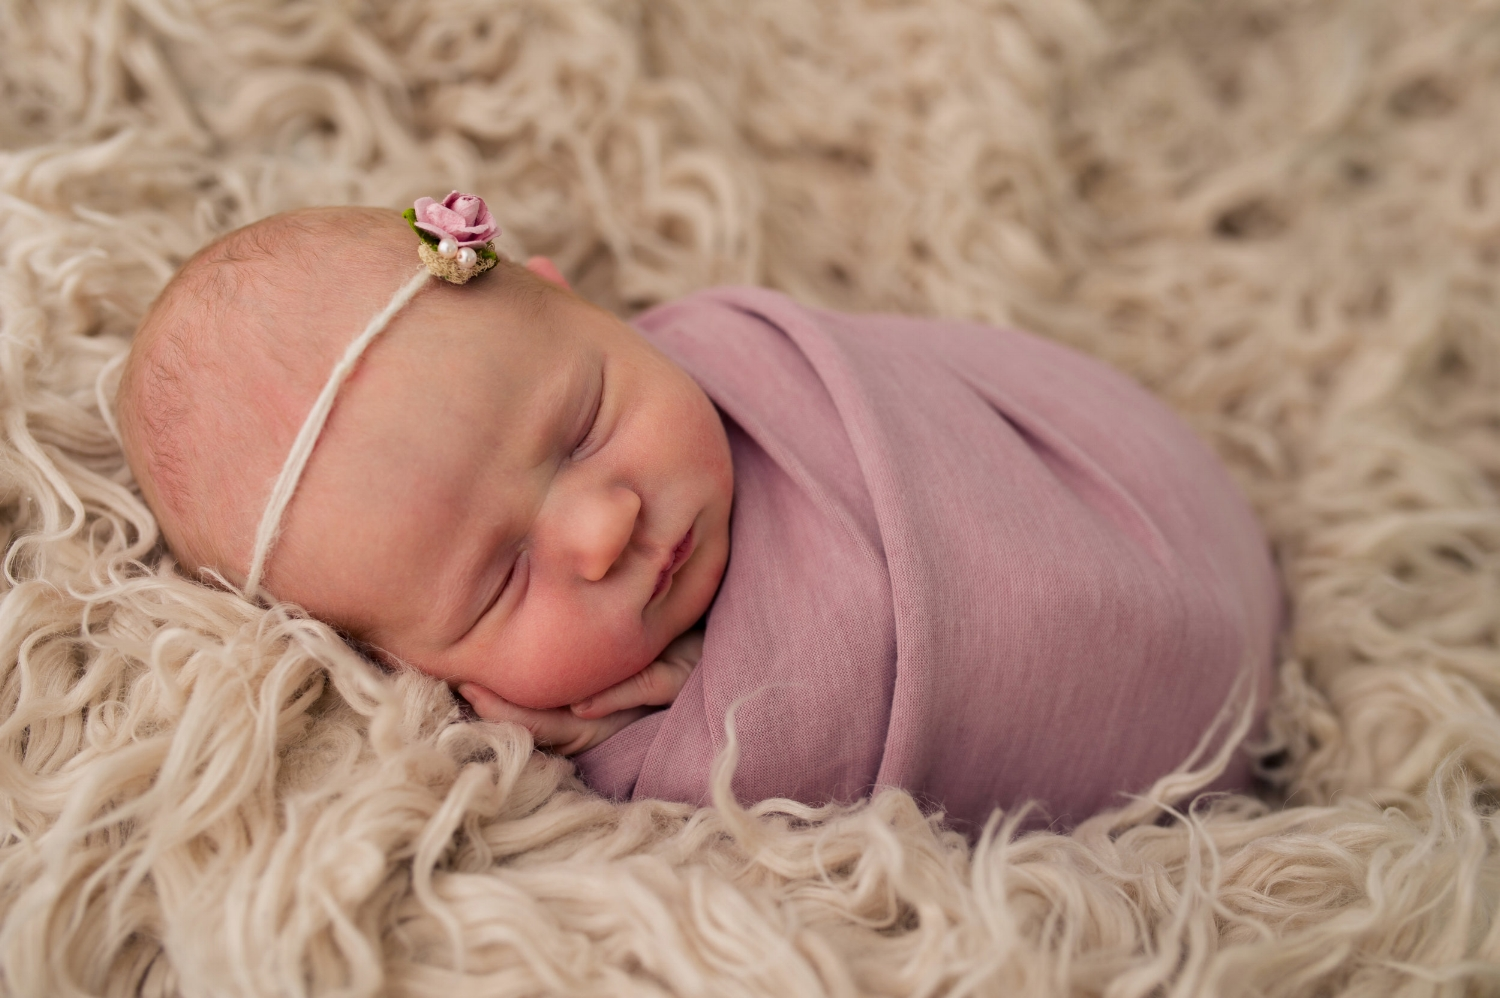 Newborn Baby Girl with Headband and Bundled in Pink